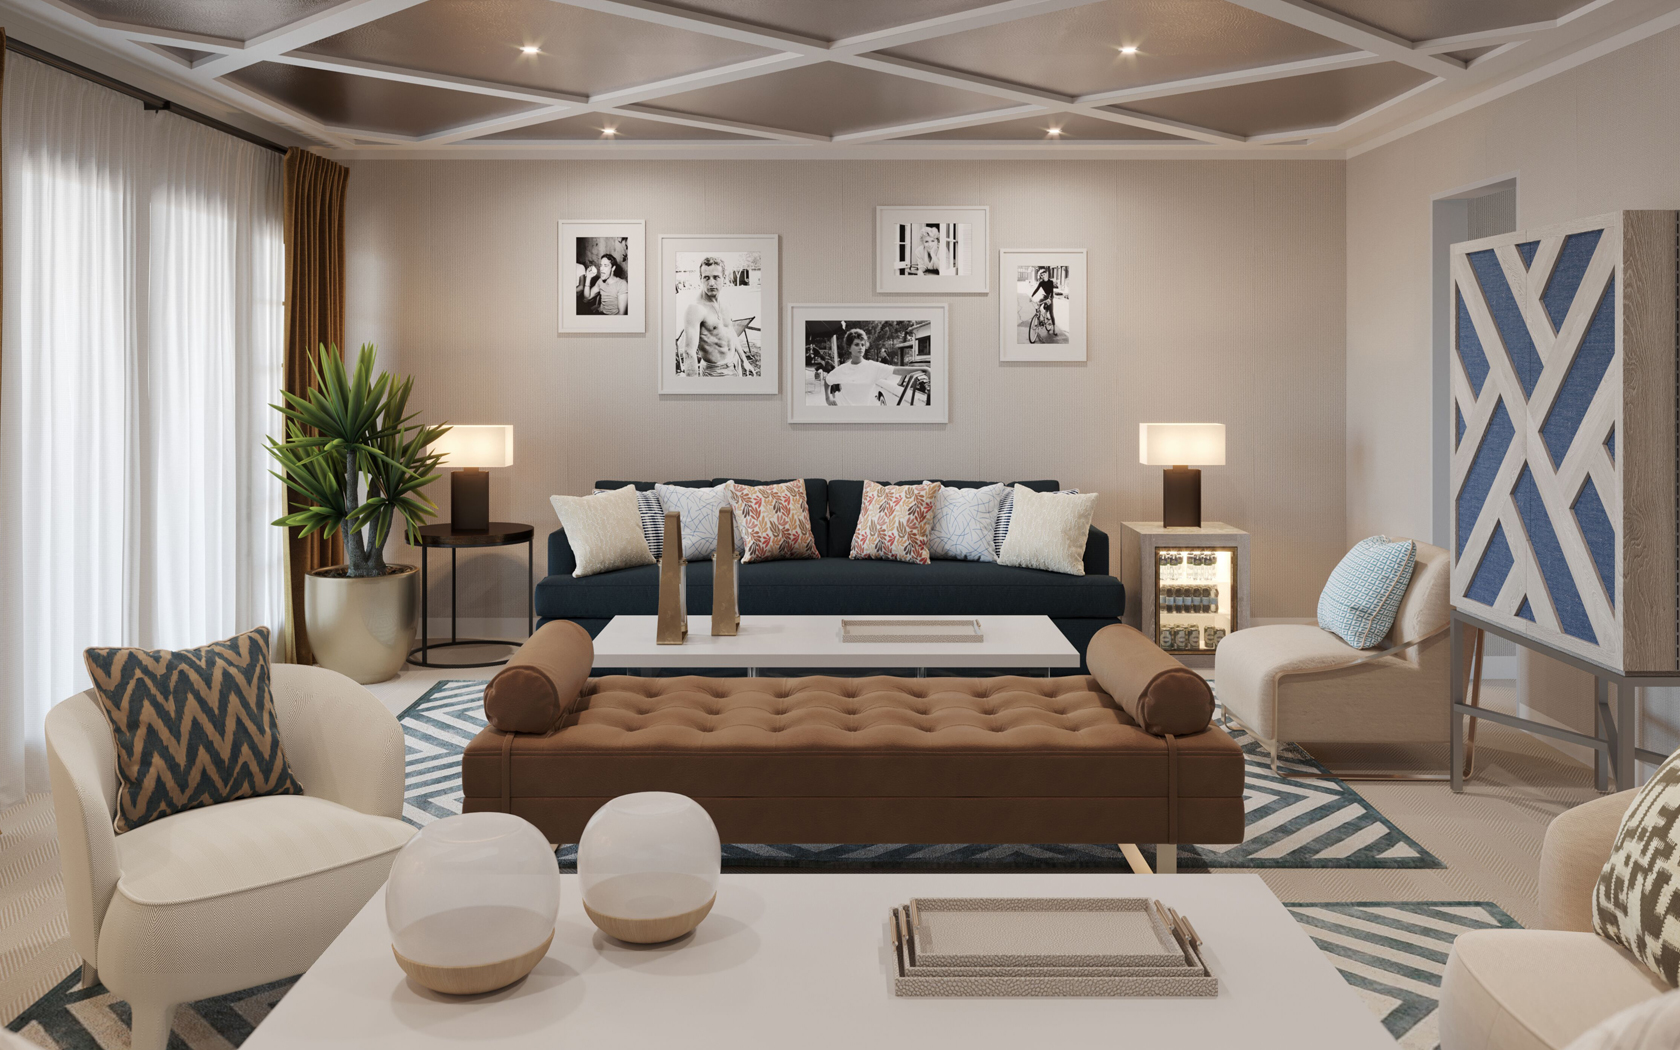 living area with cream and blue furniture and black and white photos on wall